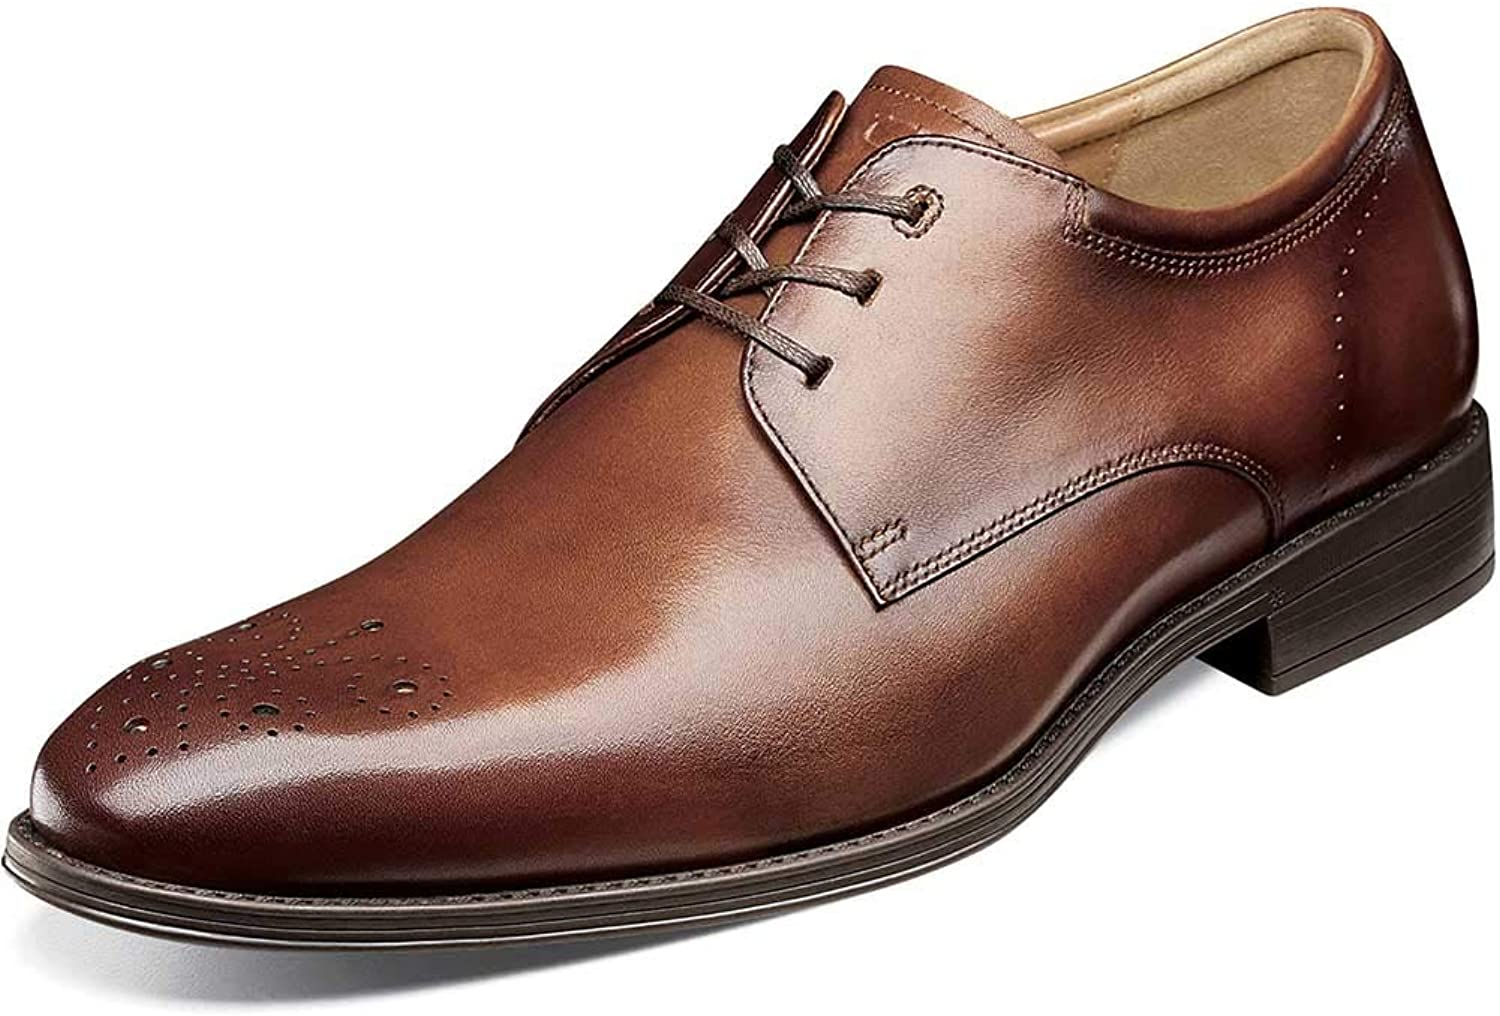 Florsheim Mens Amelio Perforated Toe Oxford